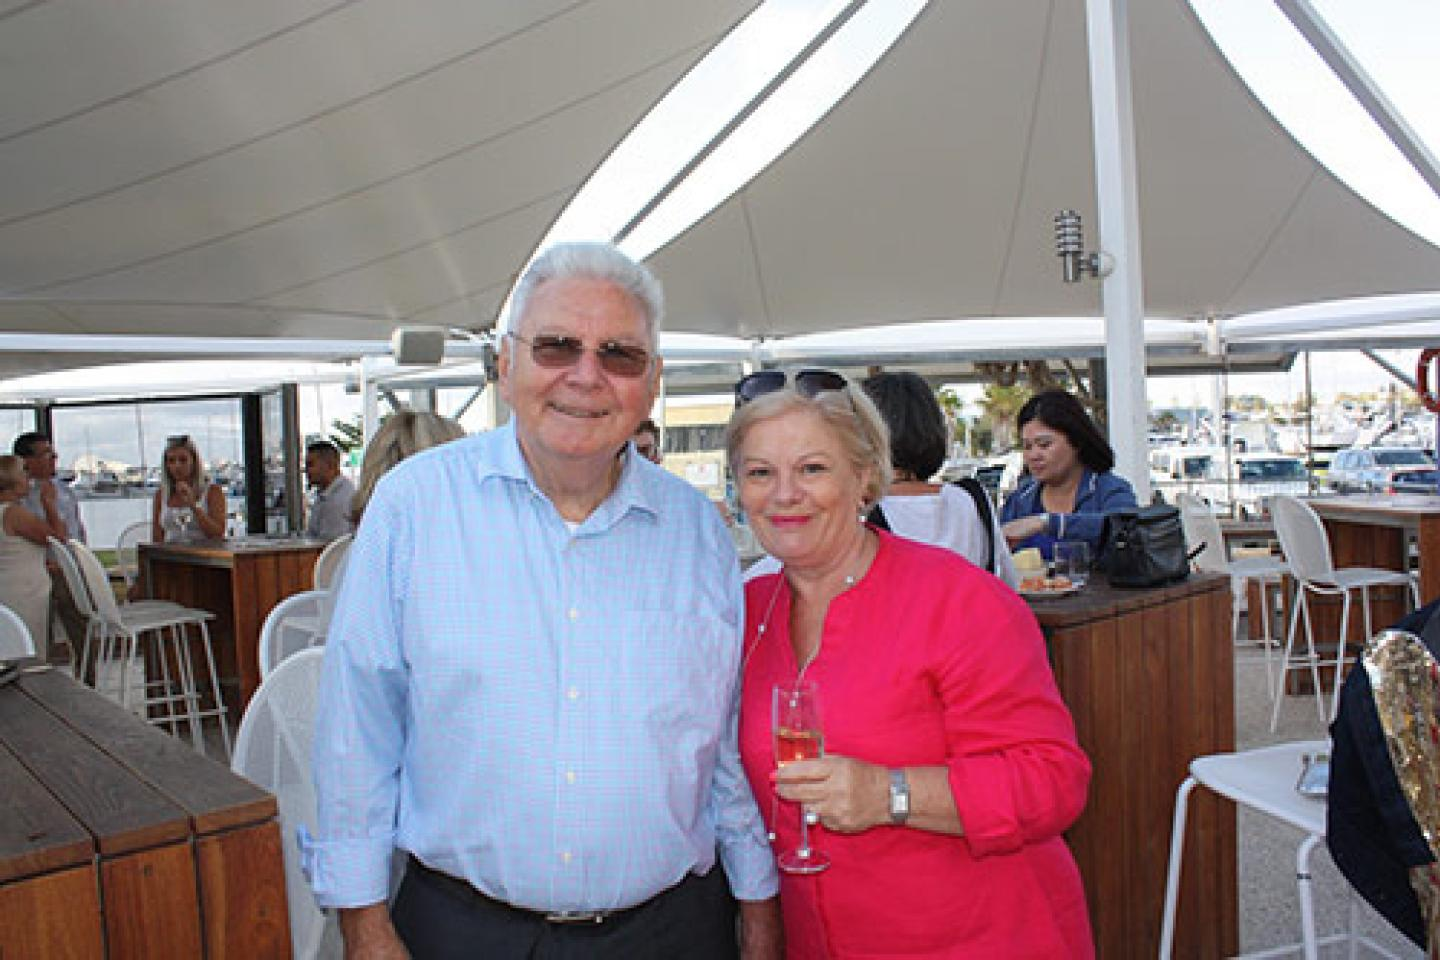 Ausplow Managing Director John Ryan and his partner Bernadette Turner.